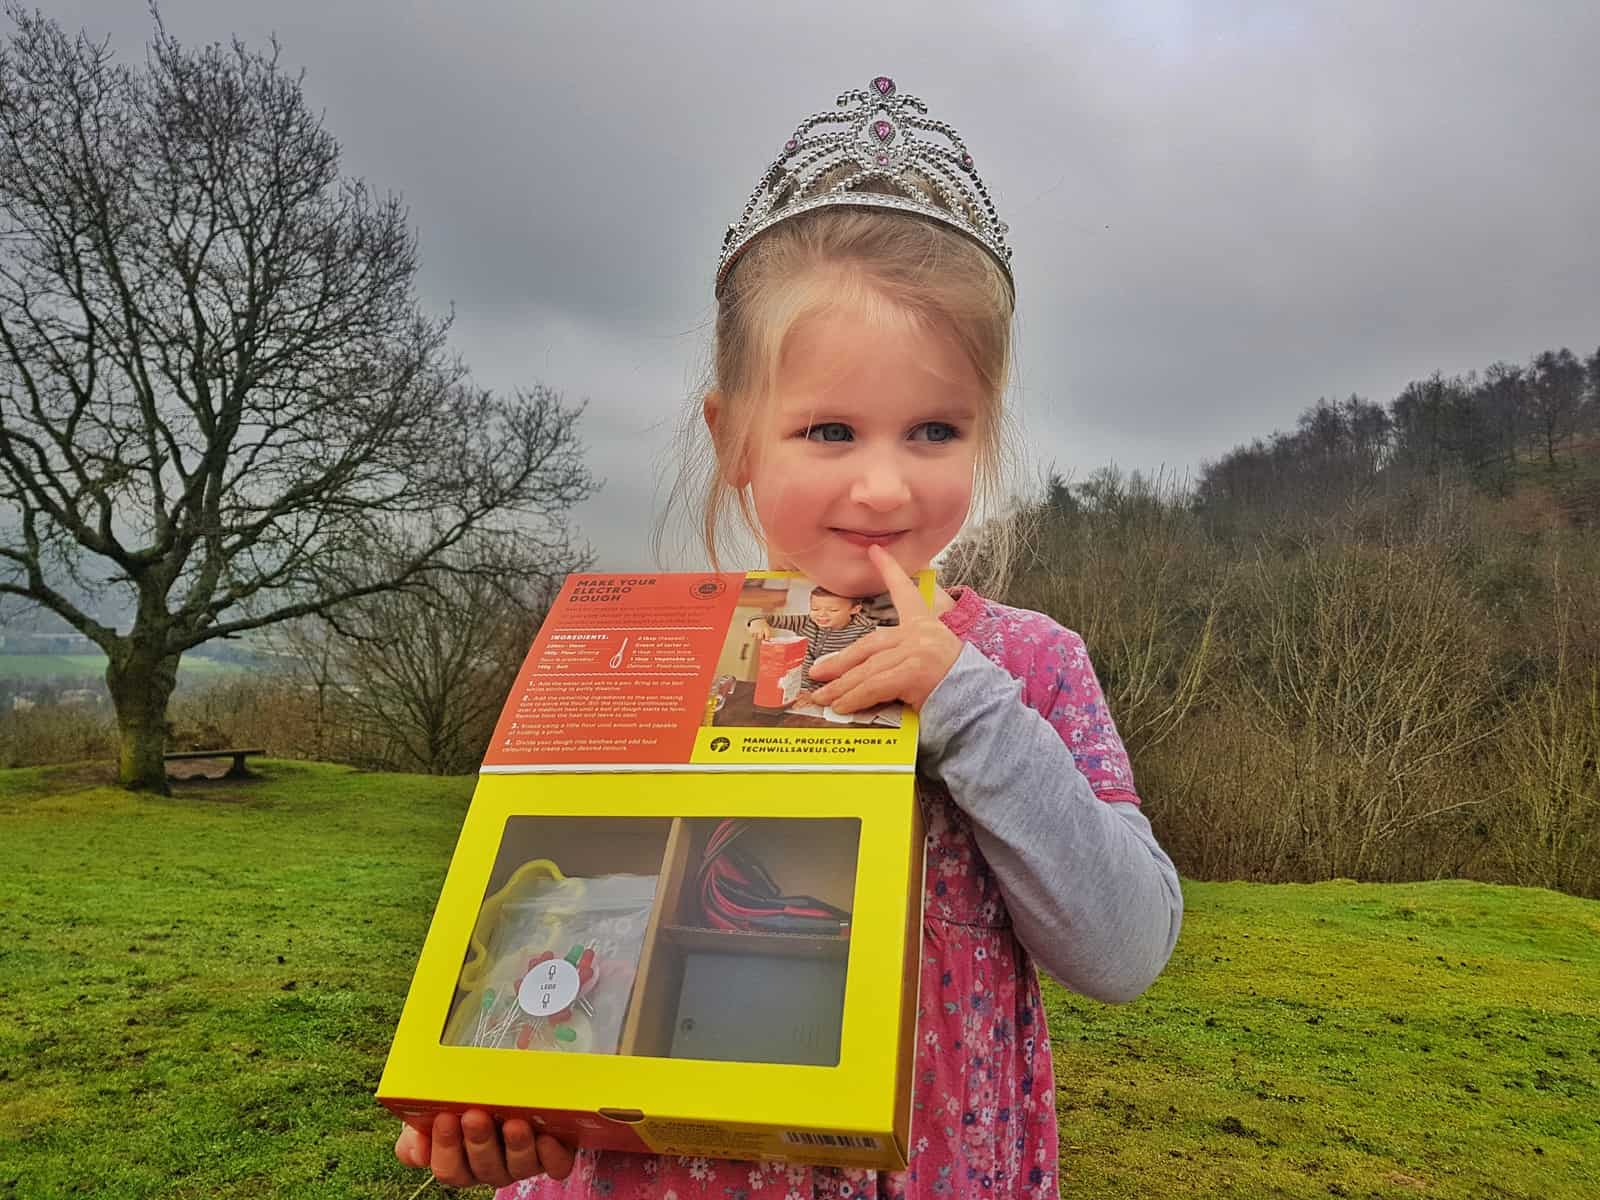 Little girl in tiara and pink dress holding an Electro Dough STEM science kit